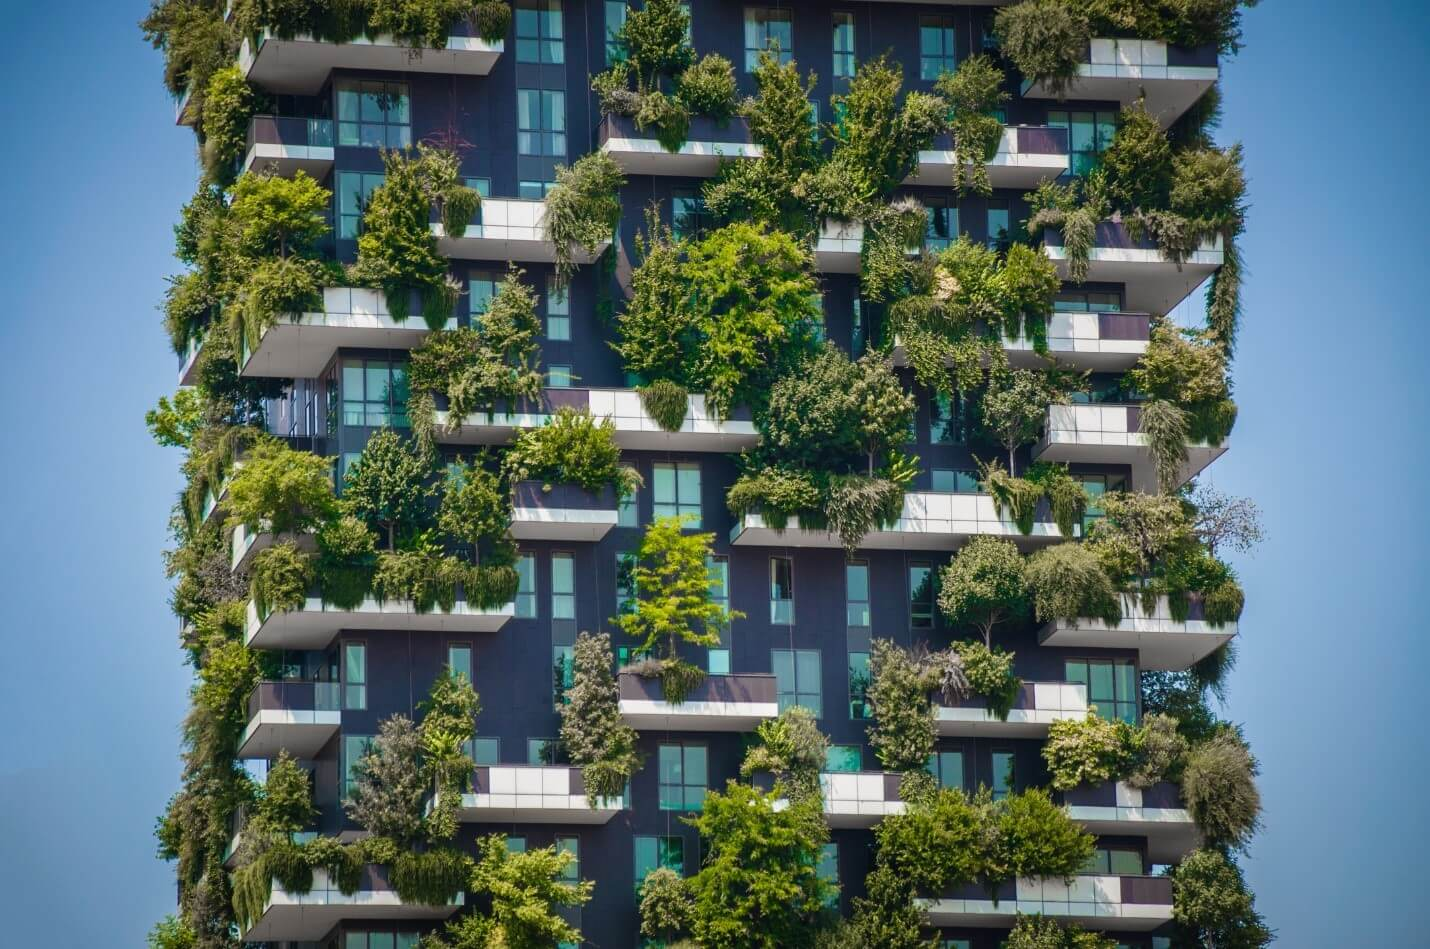 A high-rise building with a green facade